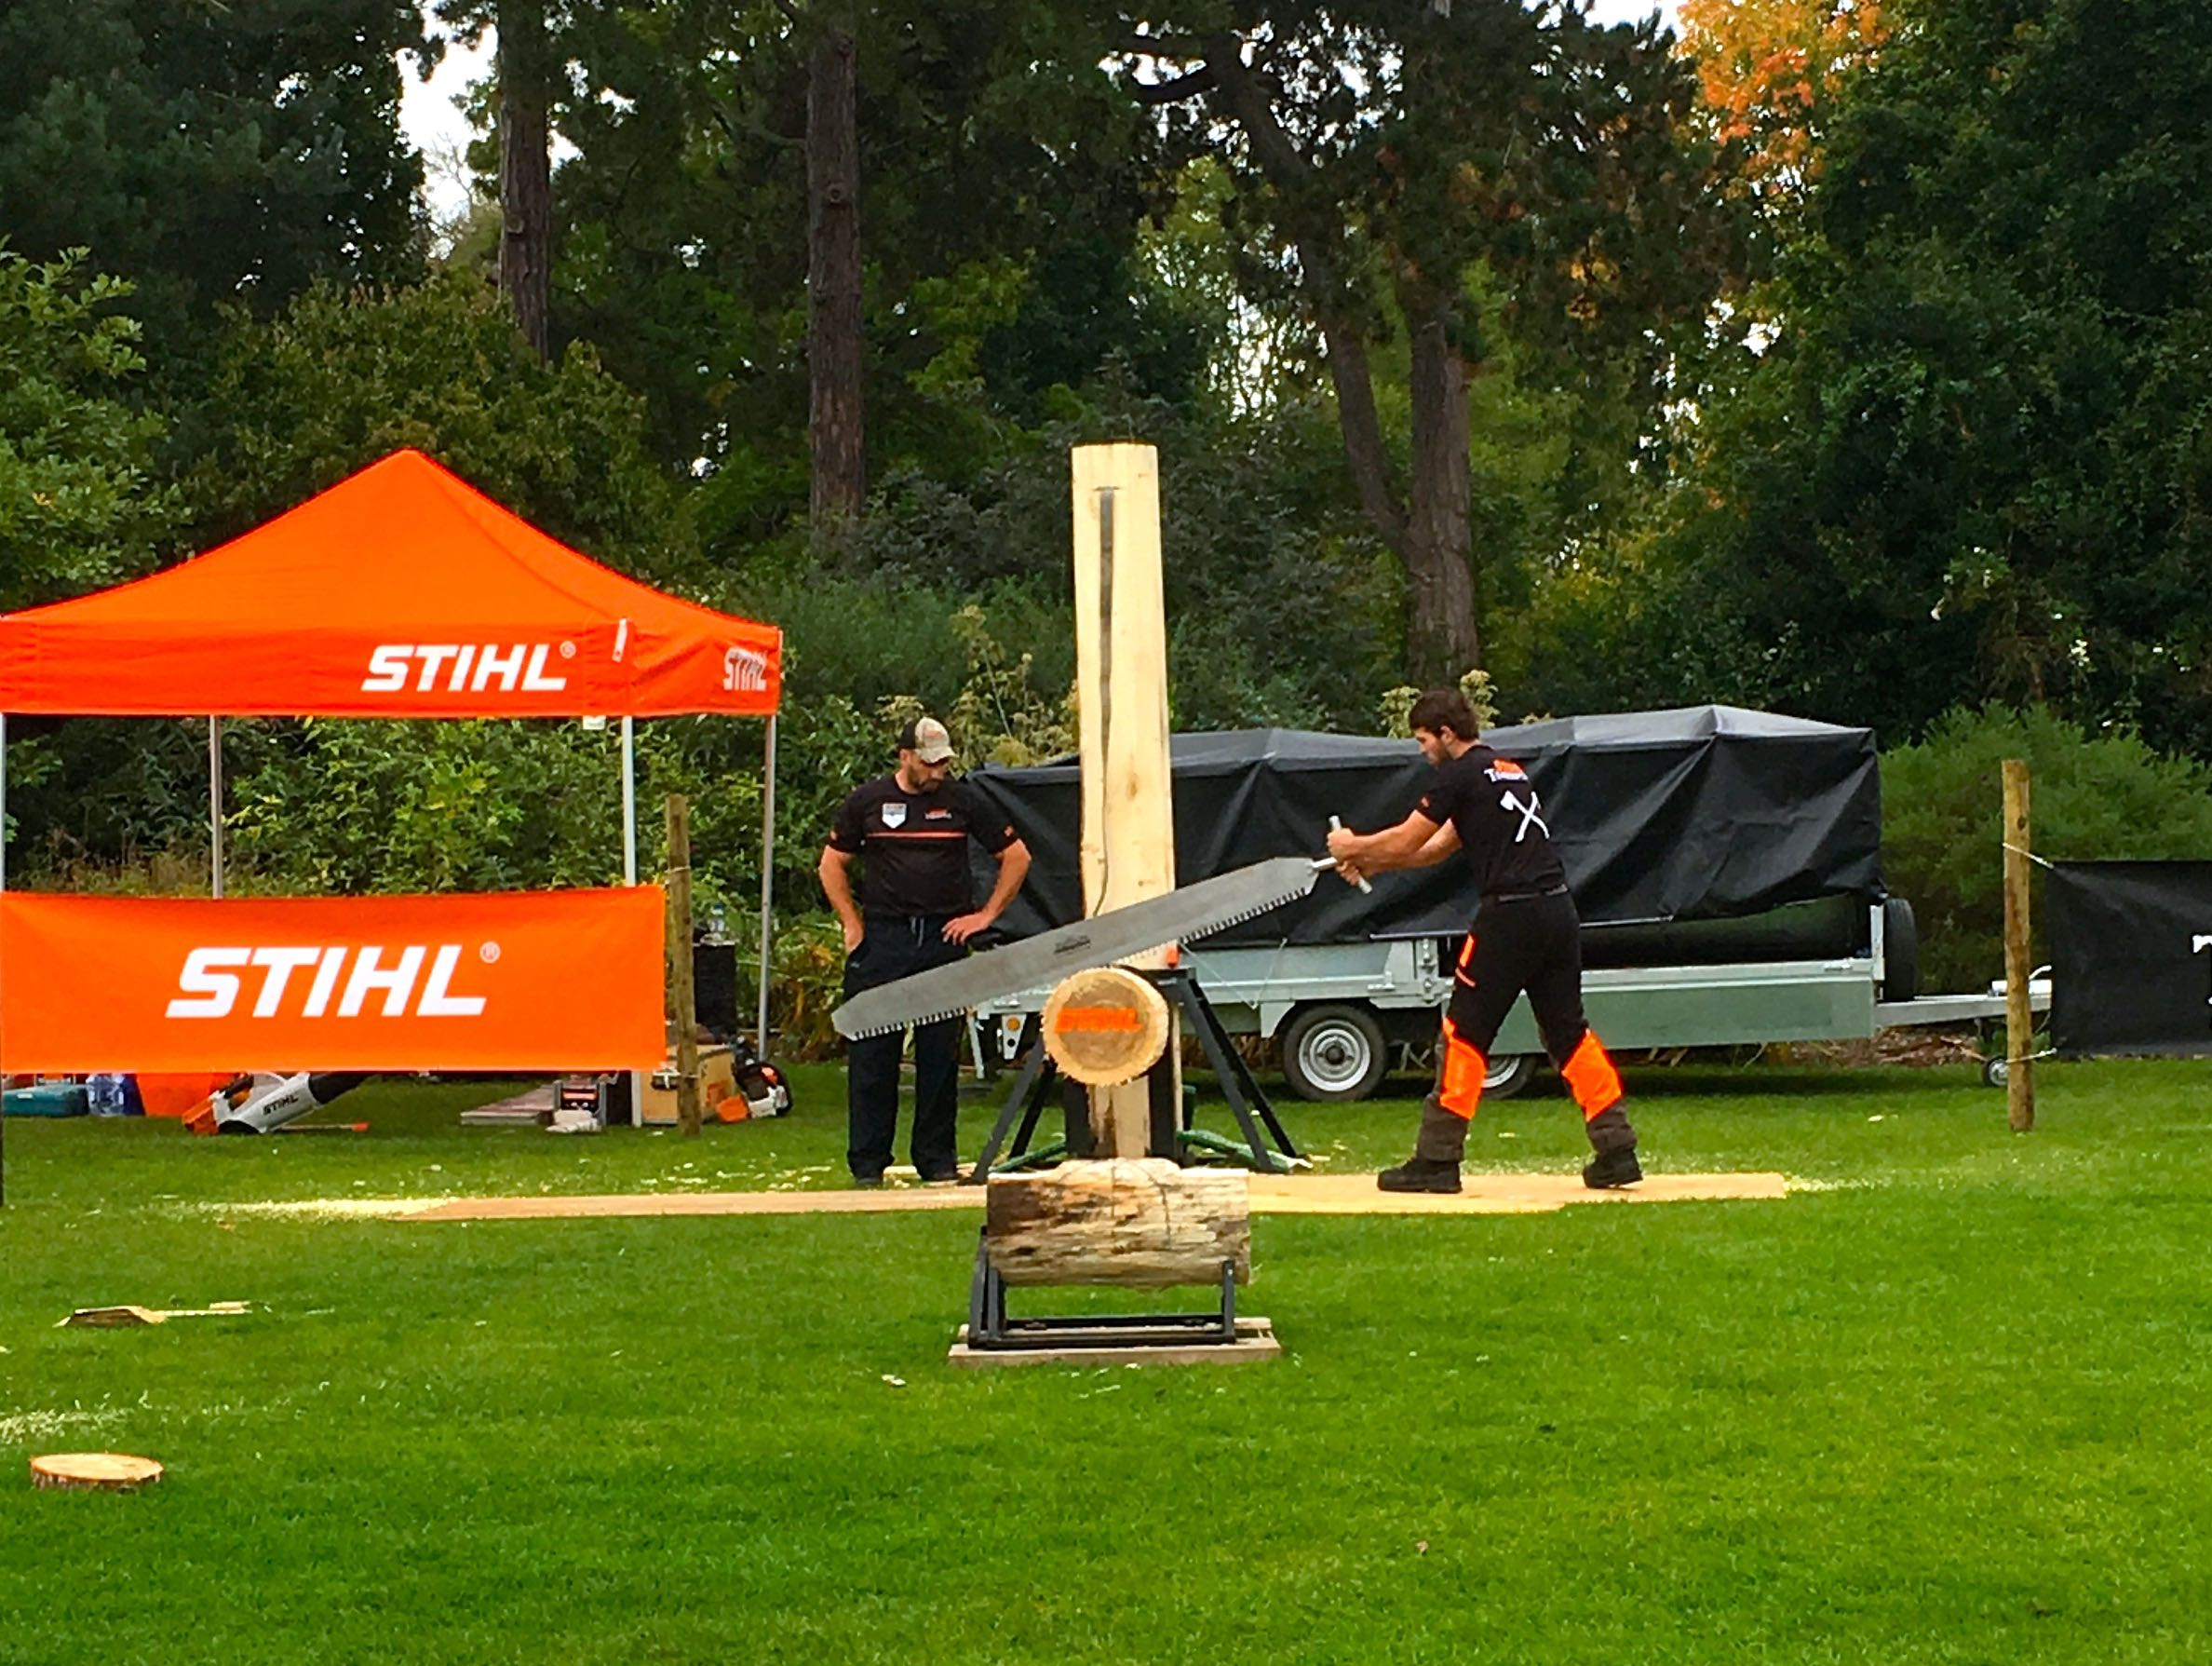 THE STIHL TIMBERSPORTS ROADSHOW